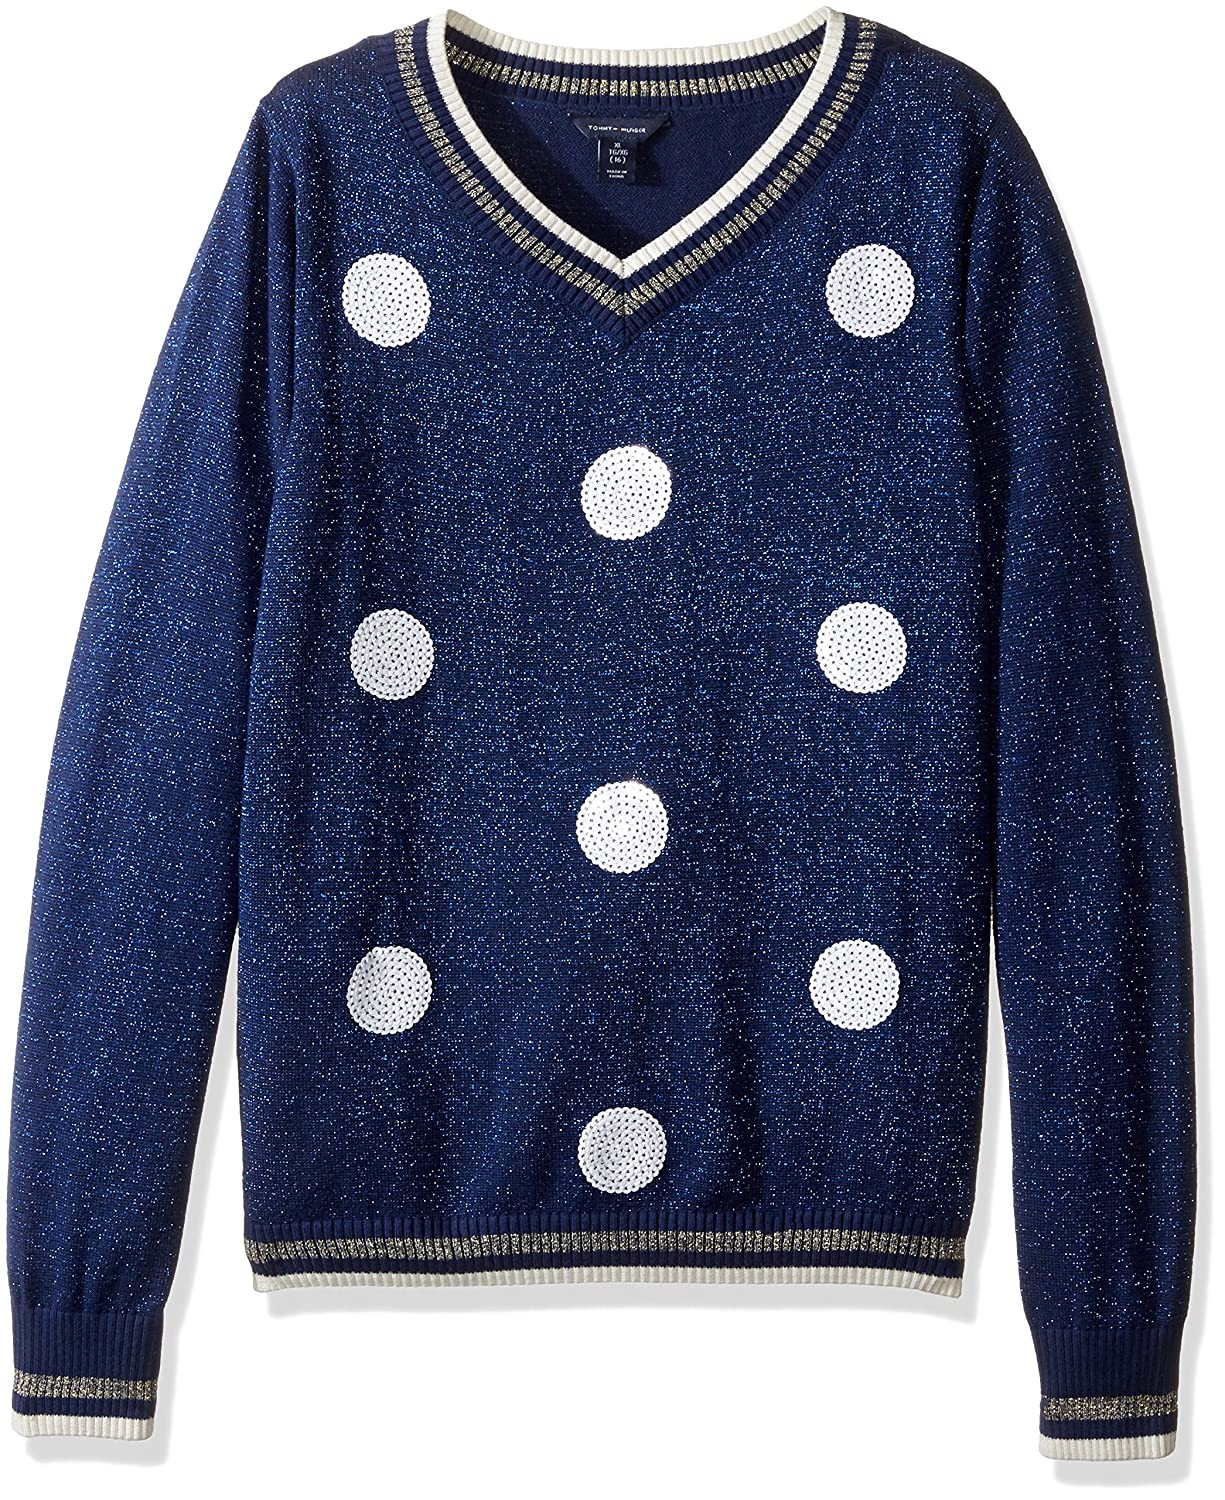 Tommy Hilfiger Girls Pullover Fashion Sweater